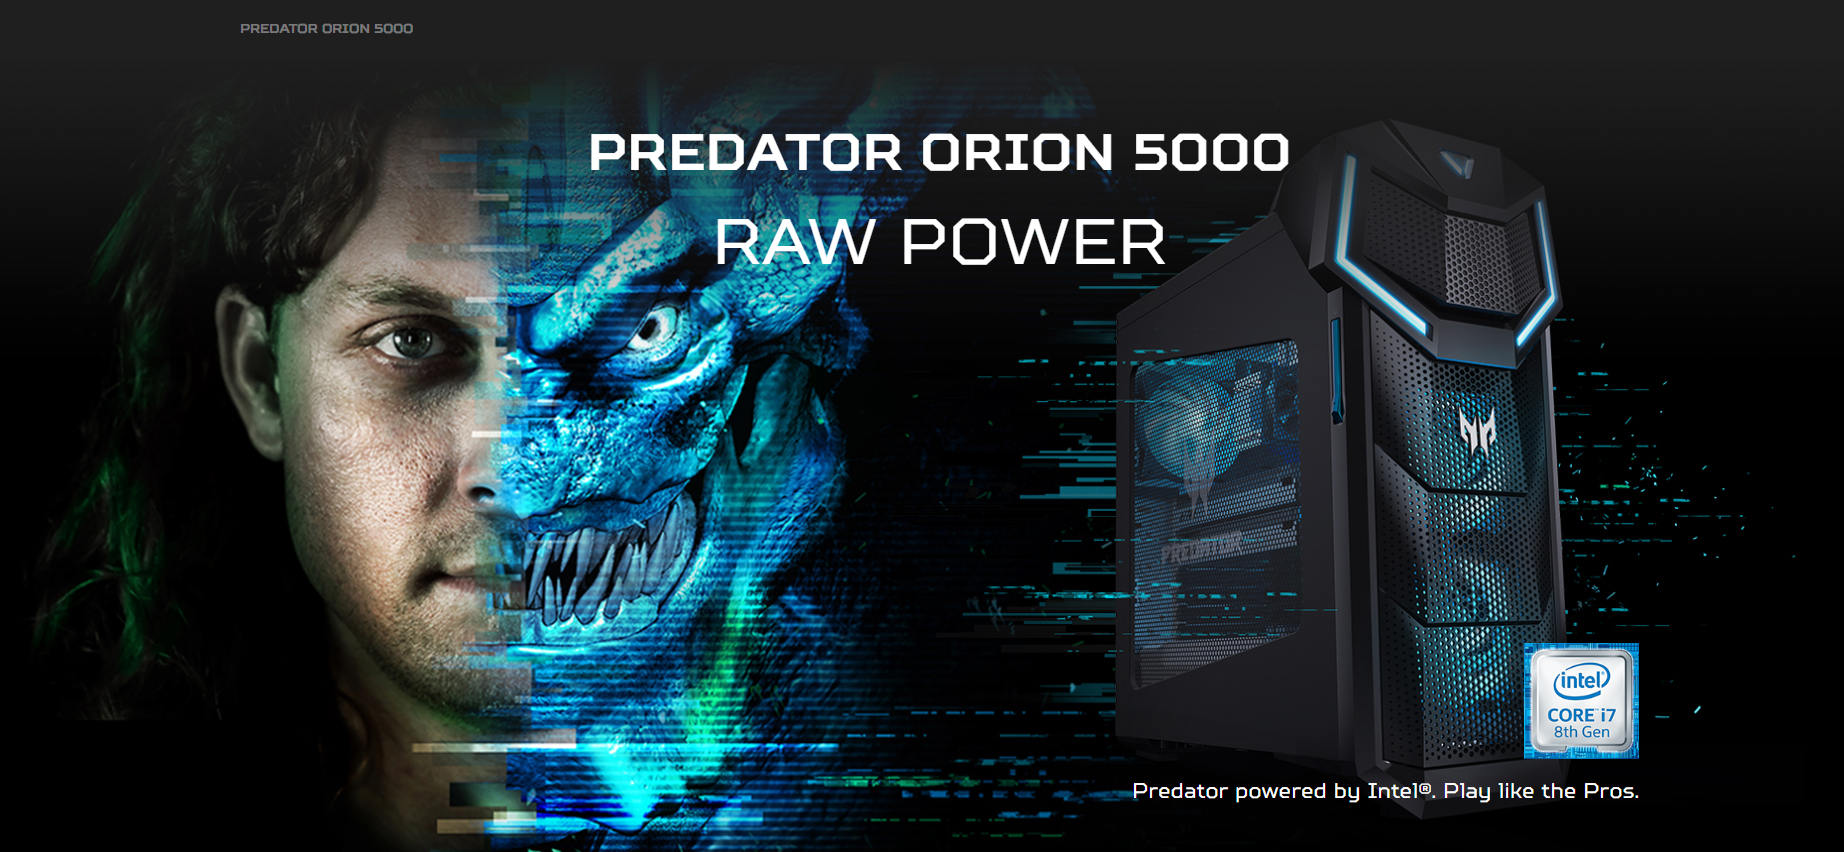 Predator Orion 5000 banner showing the face of a half-man half predator creature next to the desktop PC standing, facing to the right